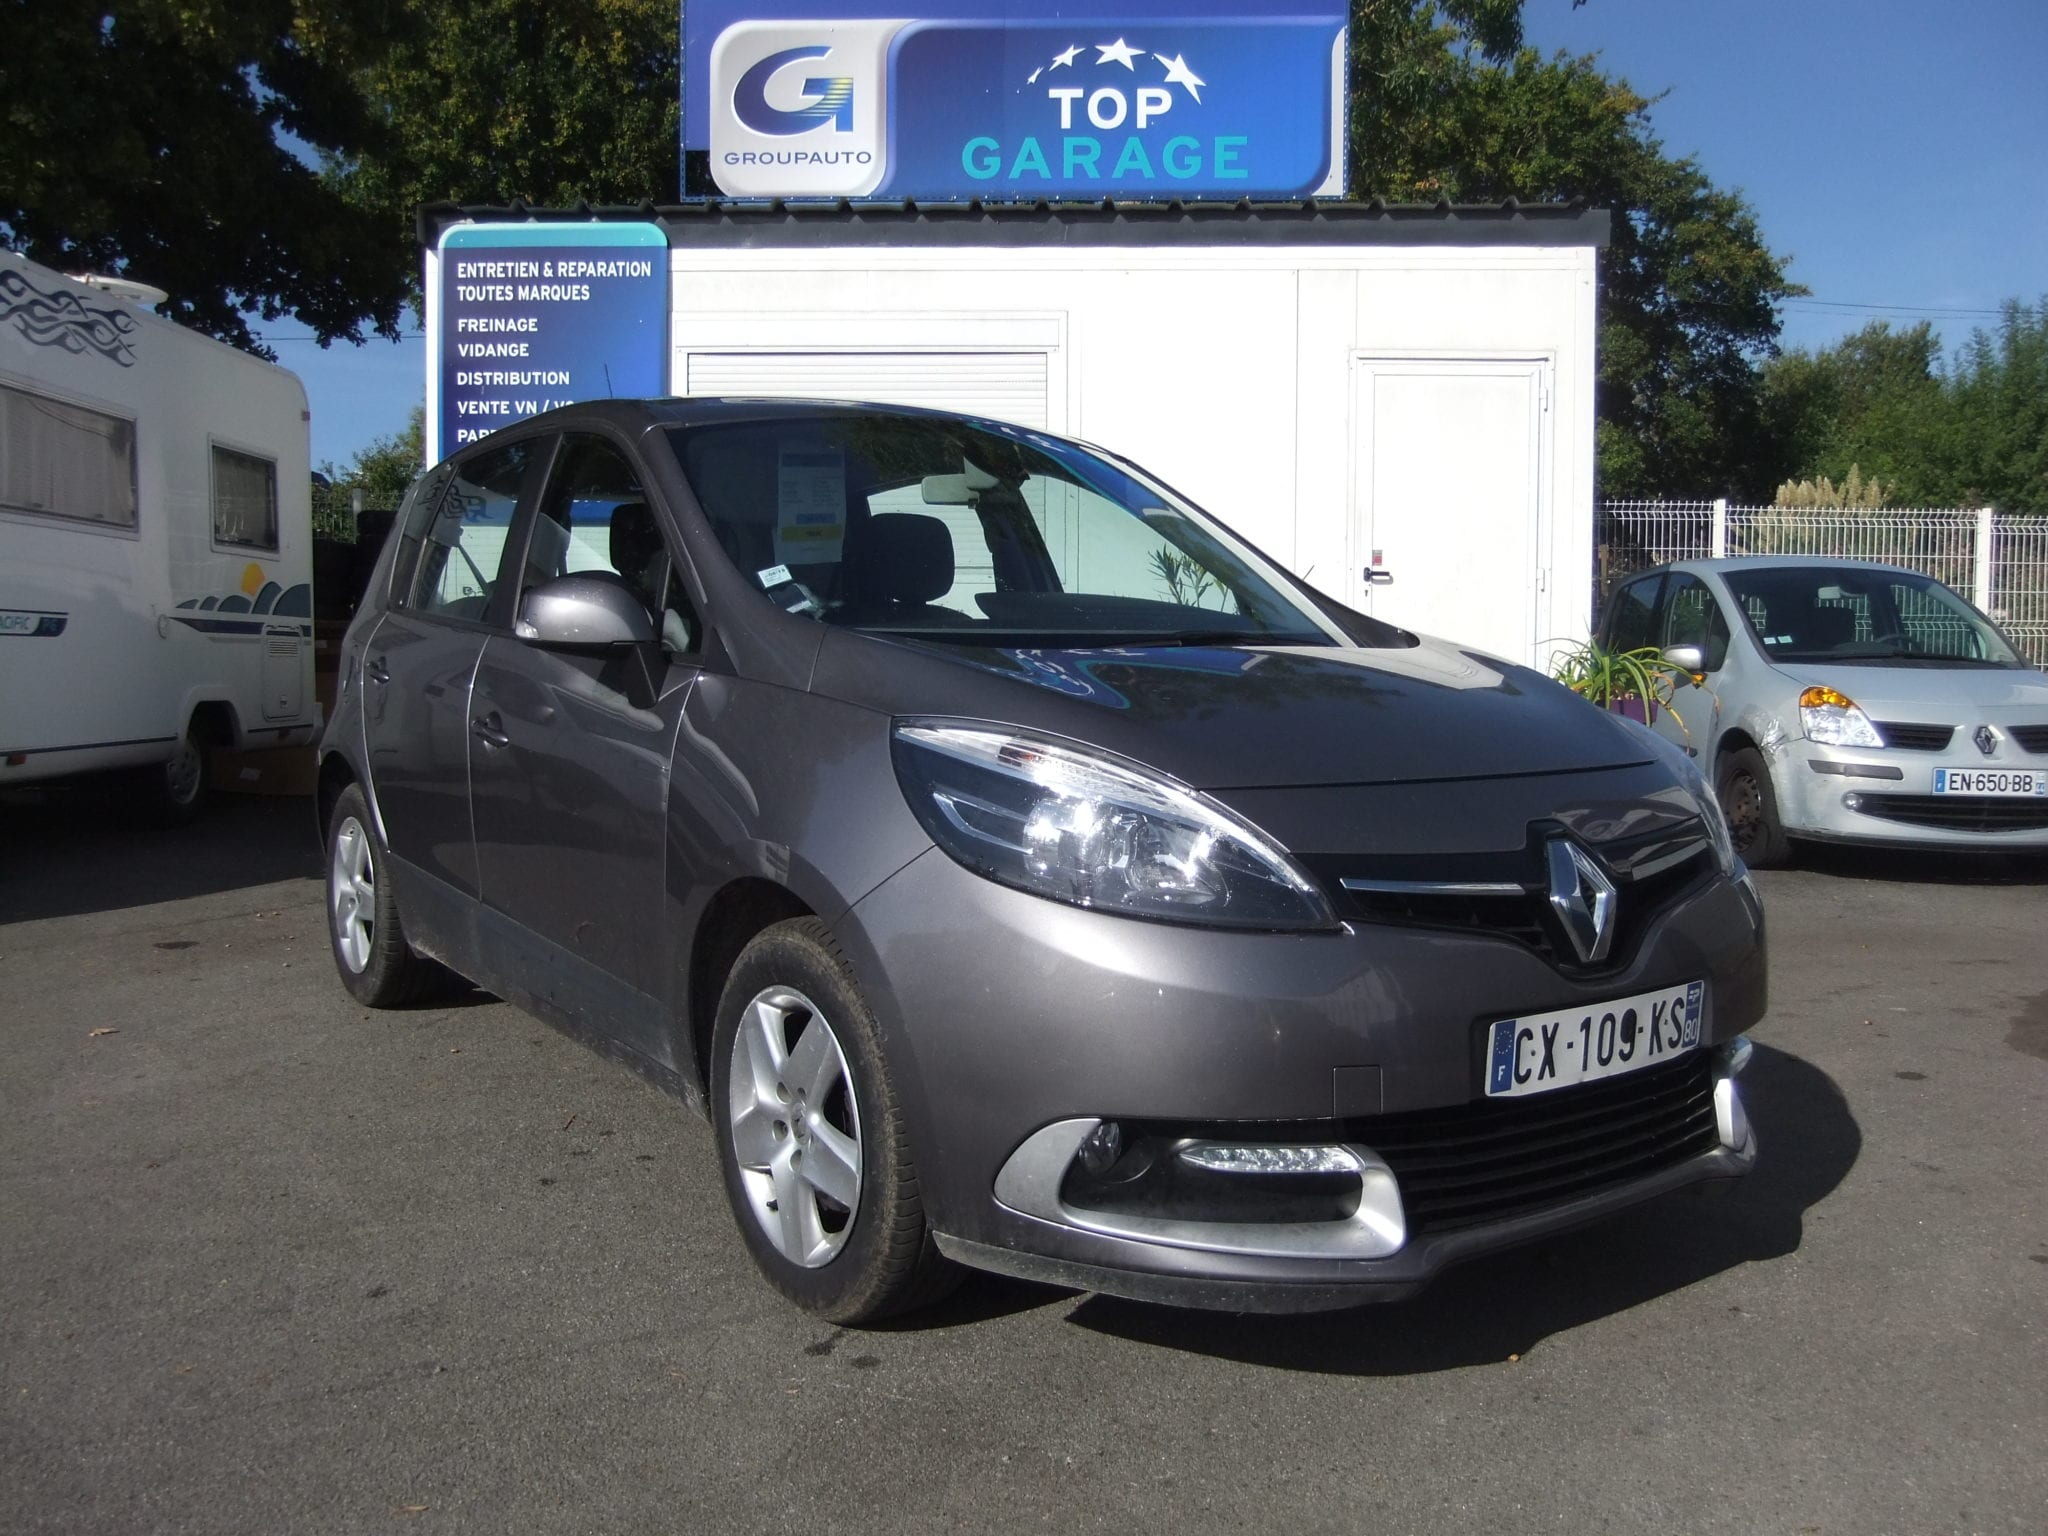 Renault SCENIC 3 DCI 110 Energy Business ECO 2  - Image 1